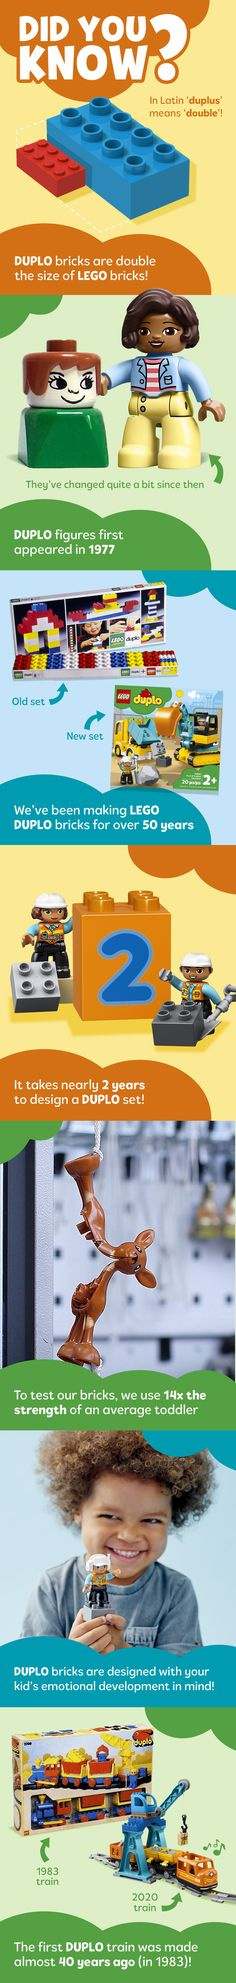 Did you know…that we've been making LEGO DUPLO set for over 50 years? Or that DUPLO bricks are twice the size of a normal LEGO brick, and therefore there's no choking hazard for the little ones? Check out these fun facts about LEGO DUPLO we prepared for you! Lego Duplo Sets, Learning Through Play, Lego Building, Lego Brick, Bricks, Little Ones, Fun Crafts, Have Fun, Facts